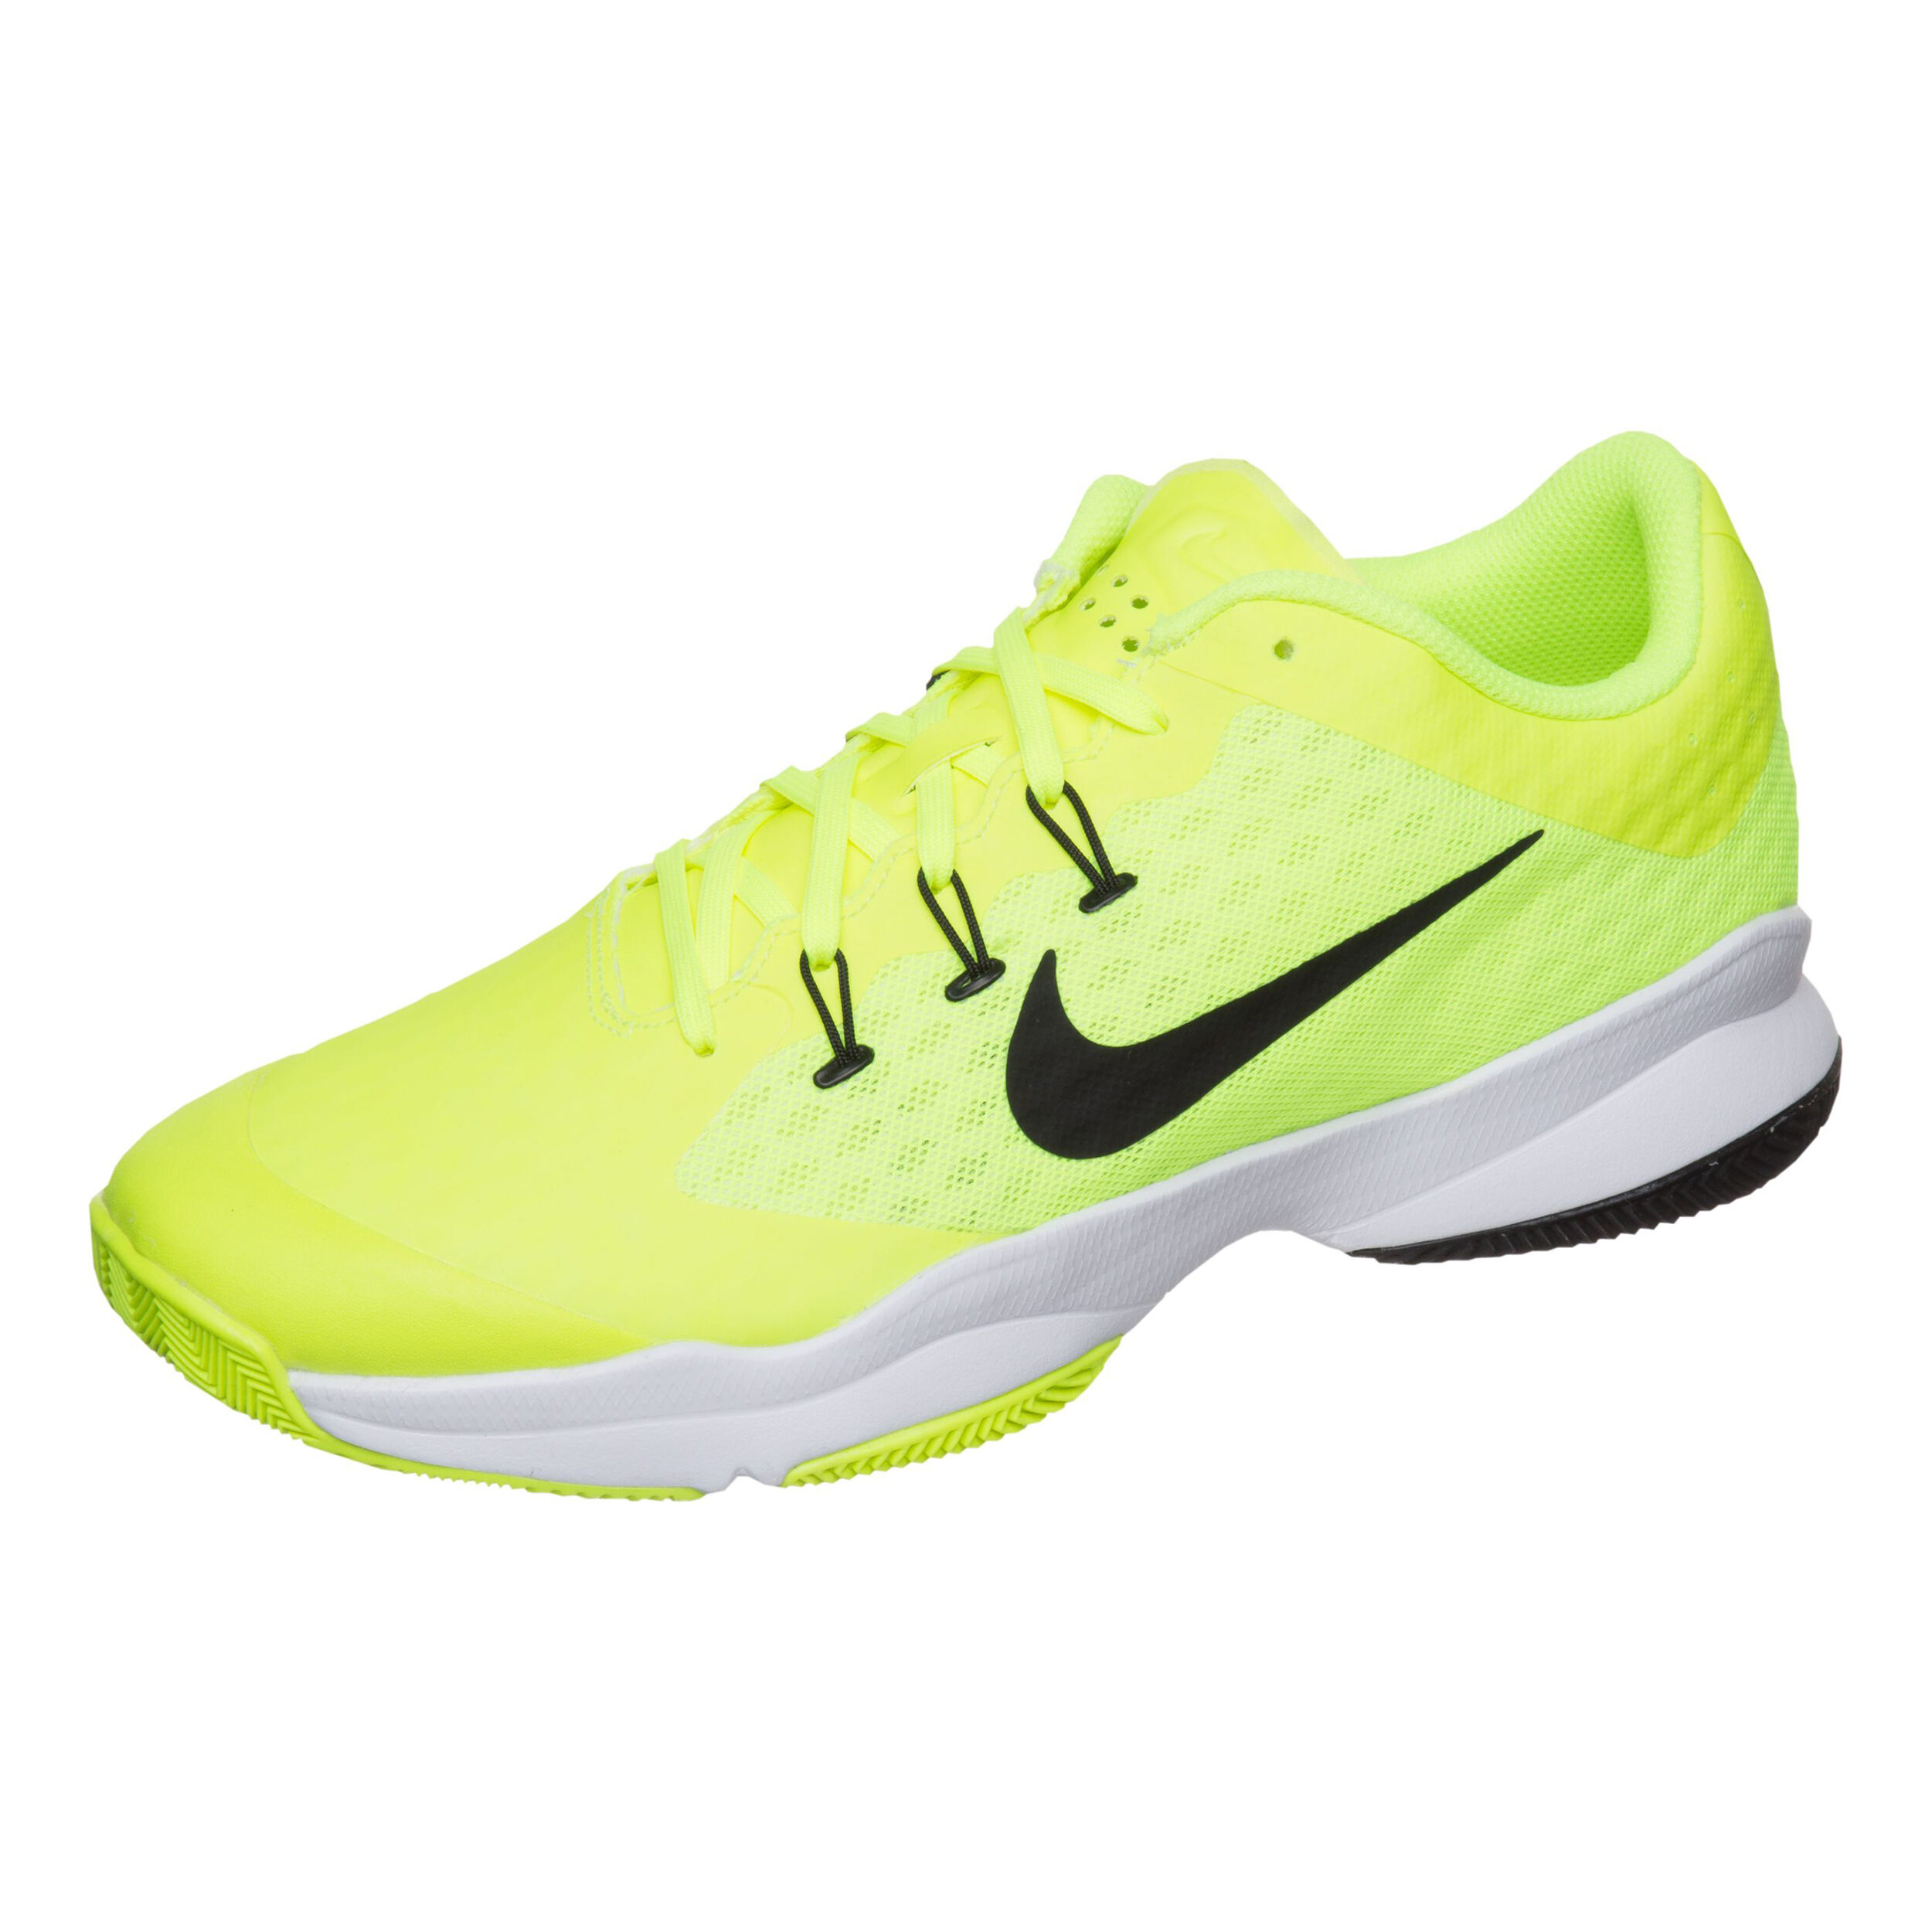 Nike Air Zoom Ultra Chaussures Toutes Surfaces Hommes